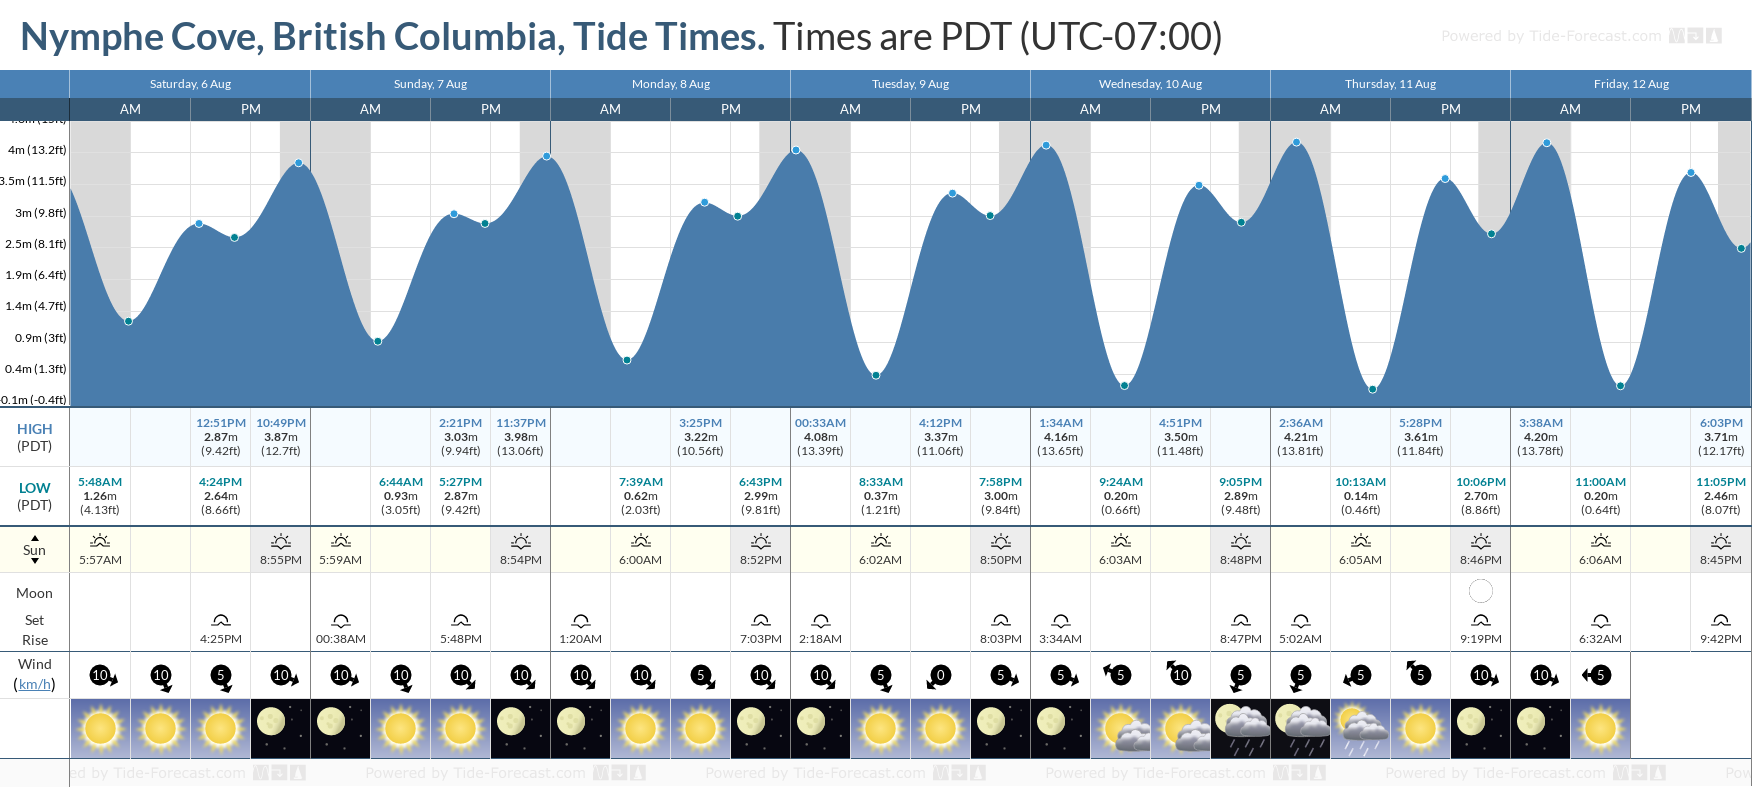 Nymphe Cove, British Columbia Tide Chart including high and low tide tide times for the next 7 days